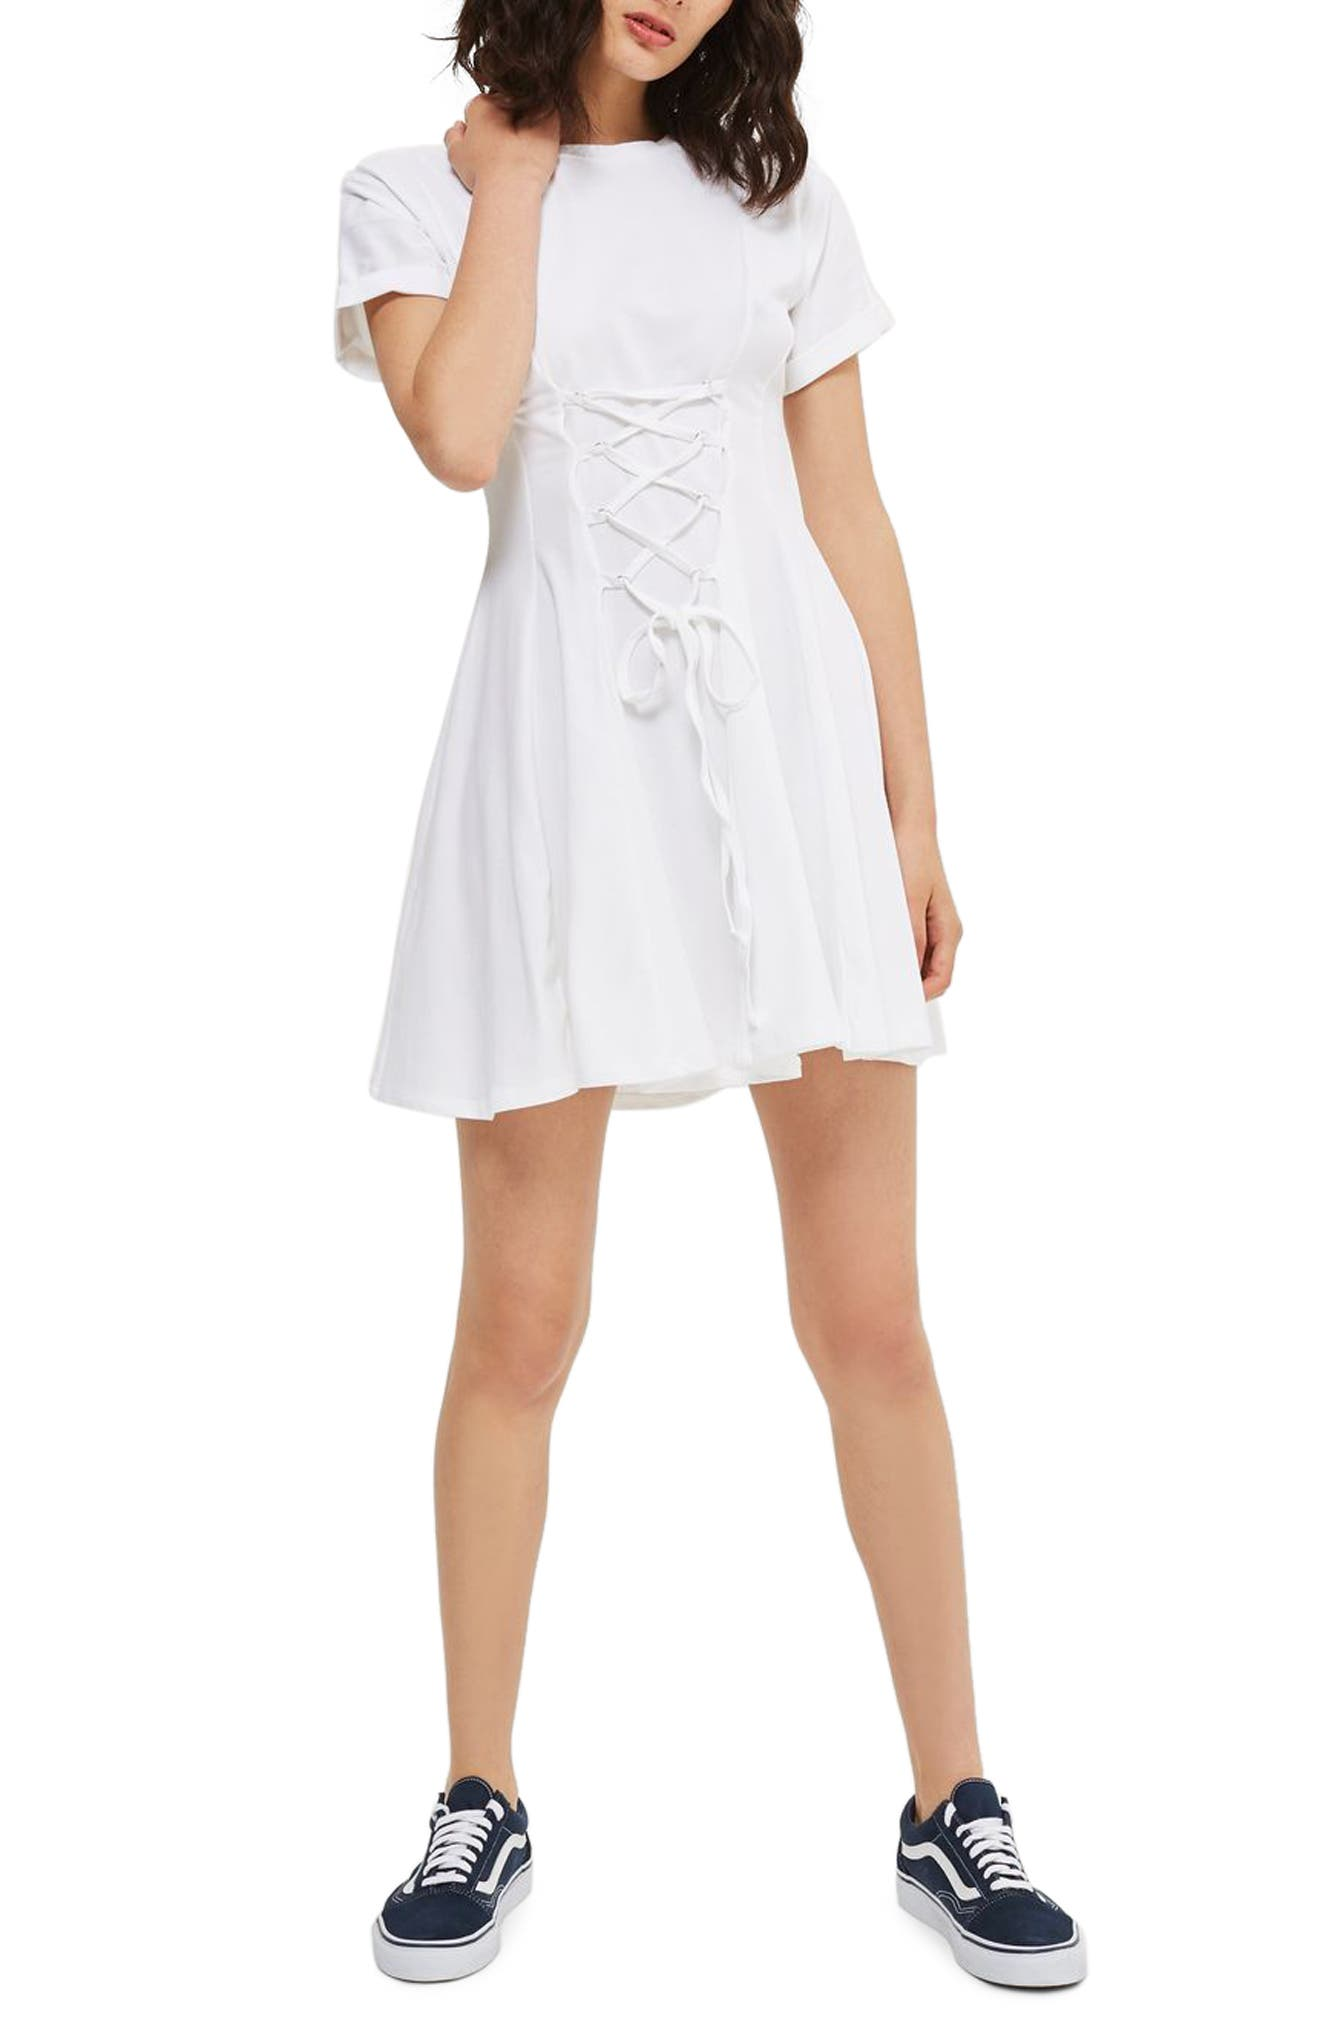 Topshop Corset Front Flippy Tunic Dress